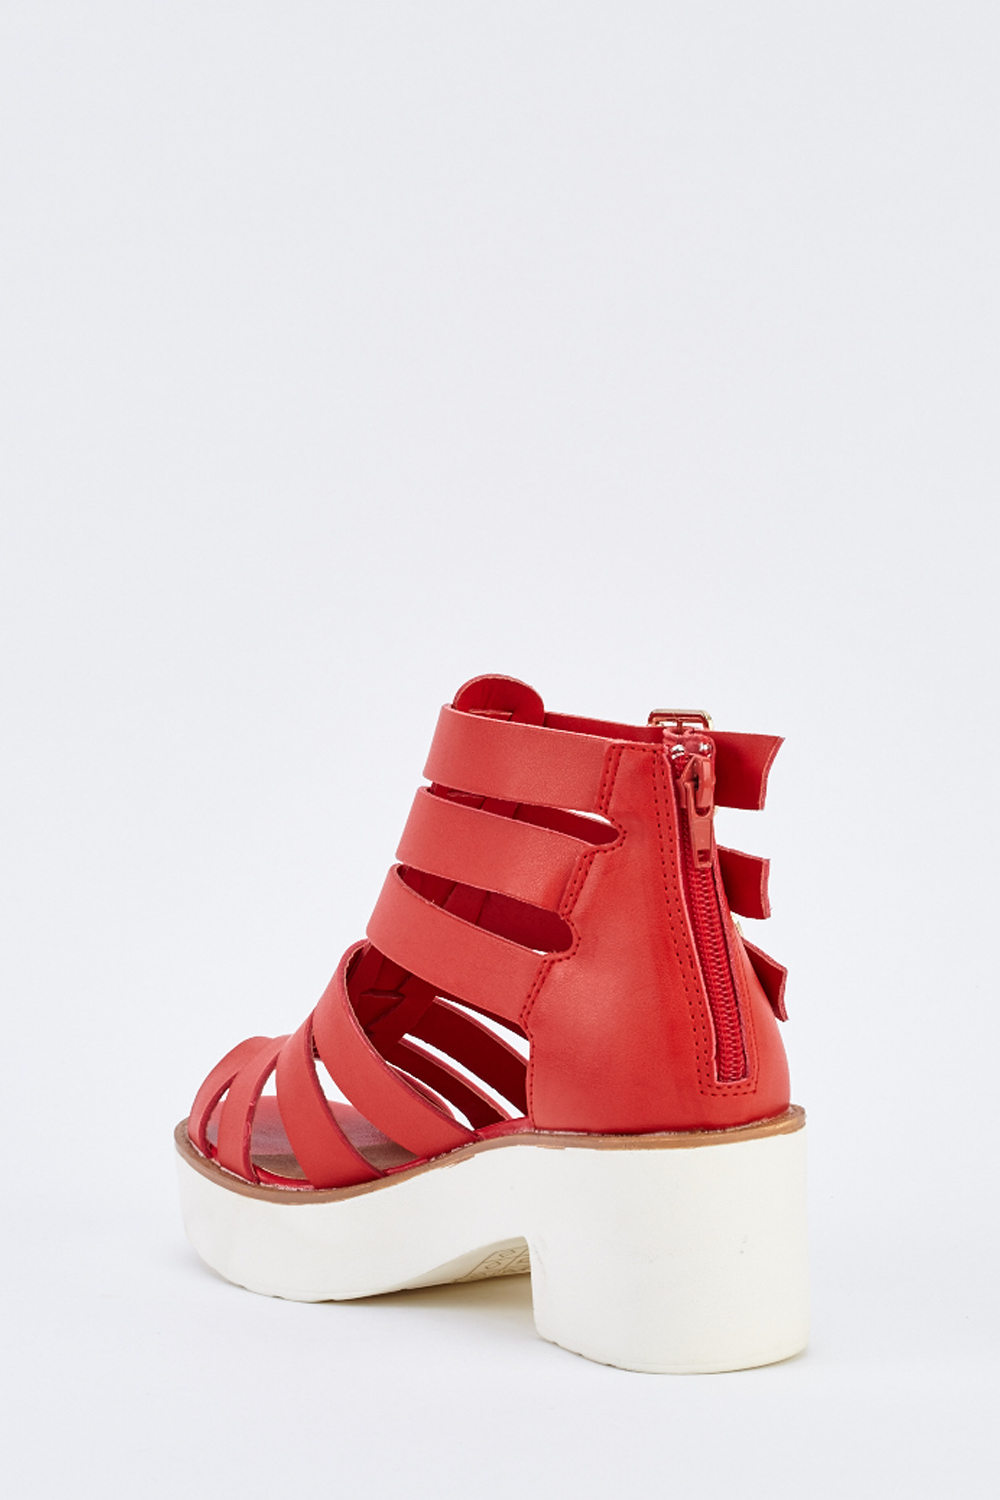 fa405a53a5f Cut Out Chunky Gladiator Sandals - Just £5